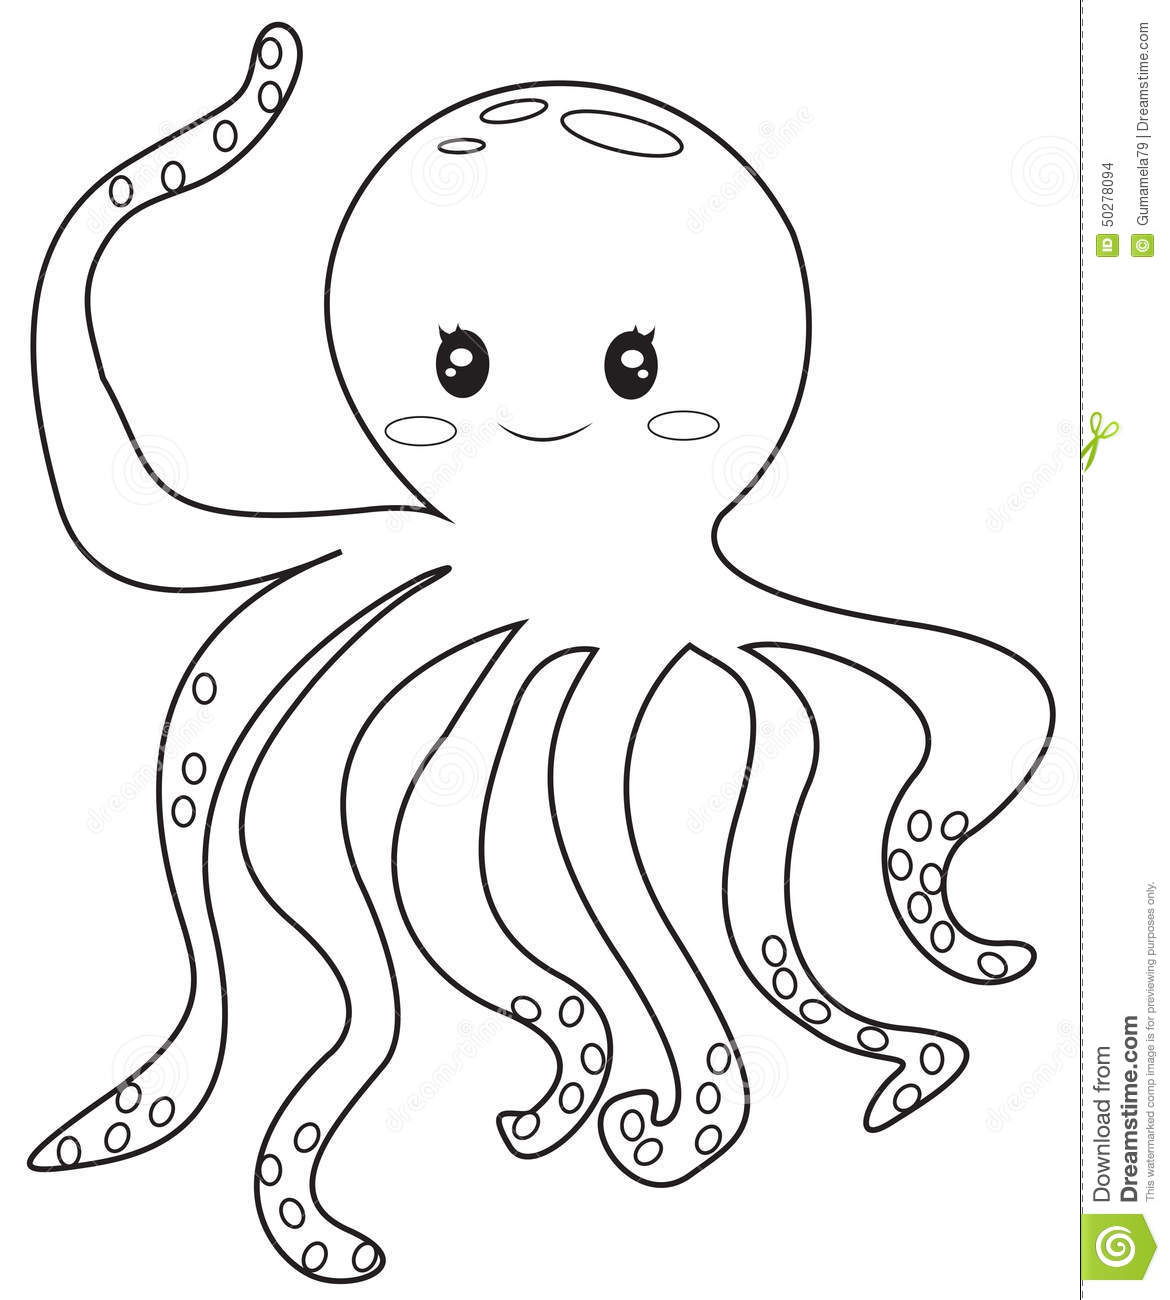 Octopus coloring page stock illustration. Illustration of elements ...